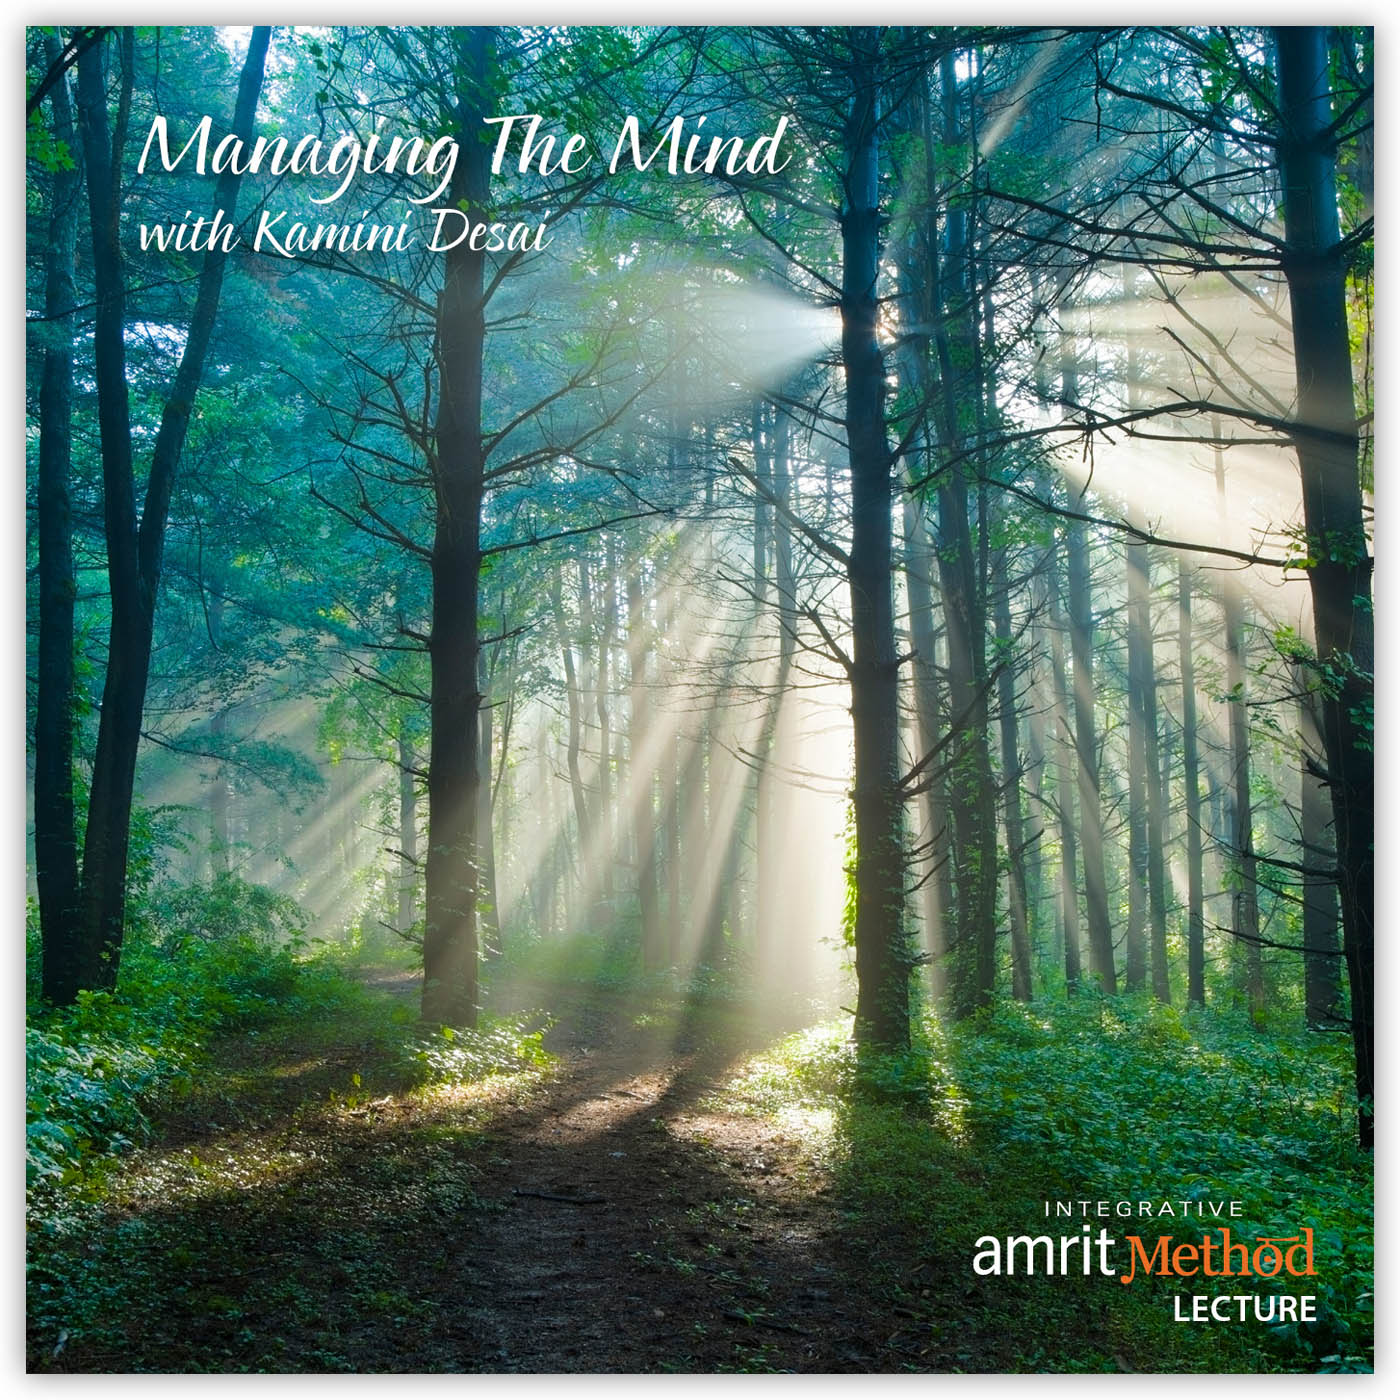 Lecture – Managing The Mind: A Yogic Perspective on Happiness with Kamini Desai, Ph.D.